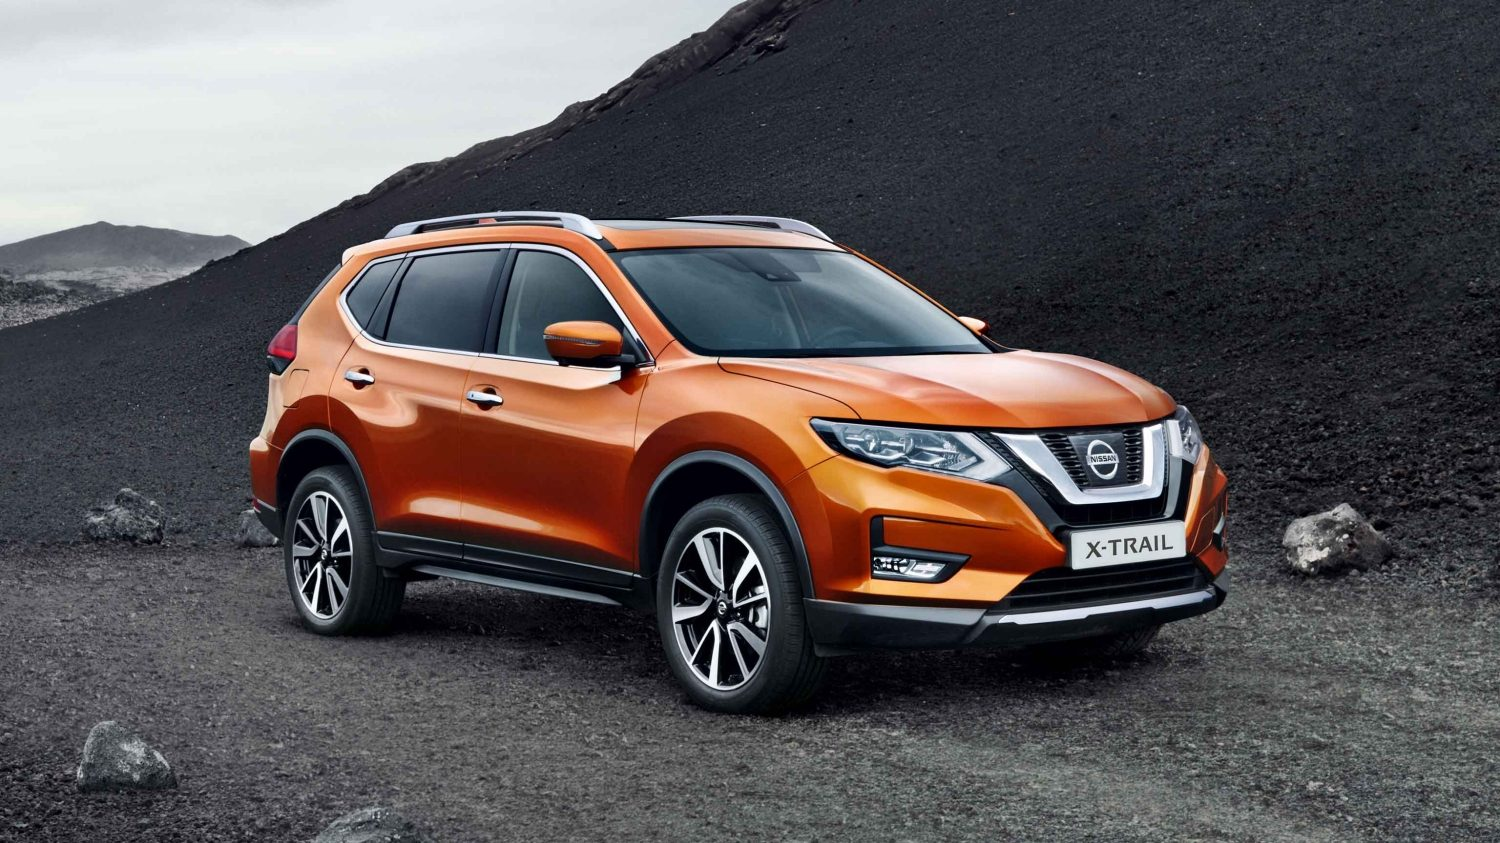 2018 nissan x trail stl future cars release date. Black Bedroom Furniture Sets. Home Design Ideas